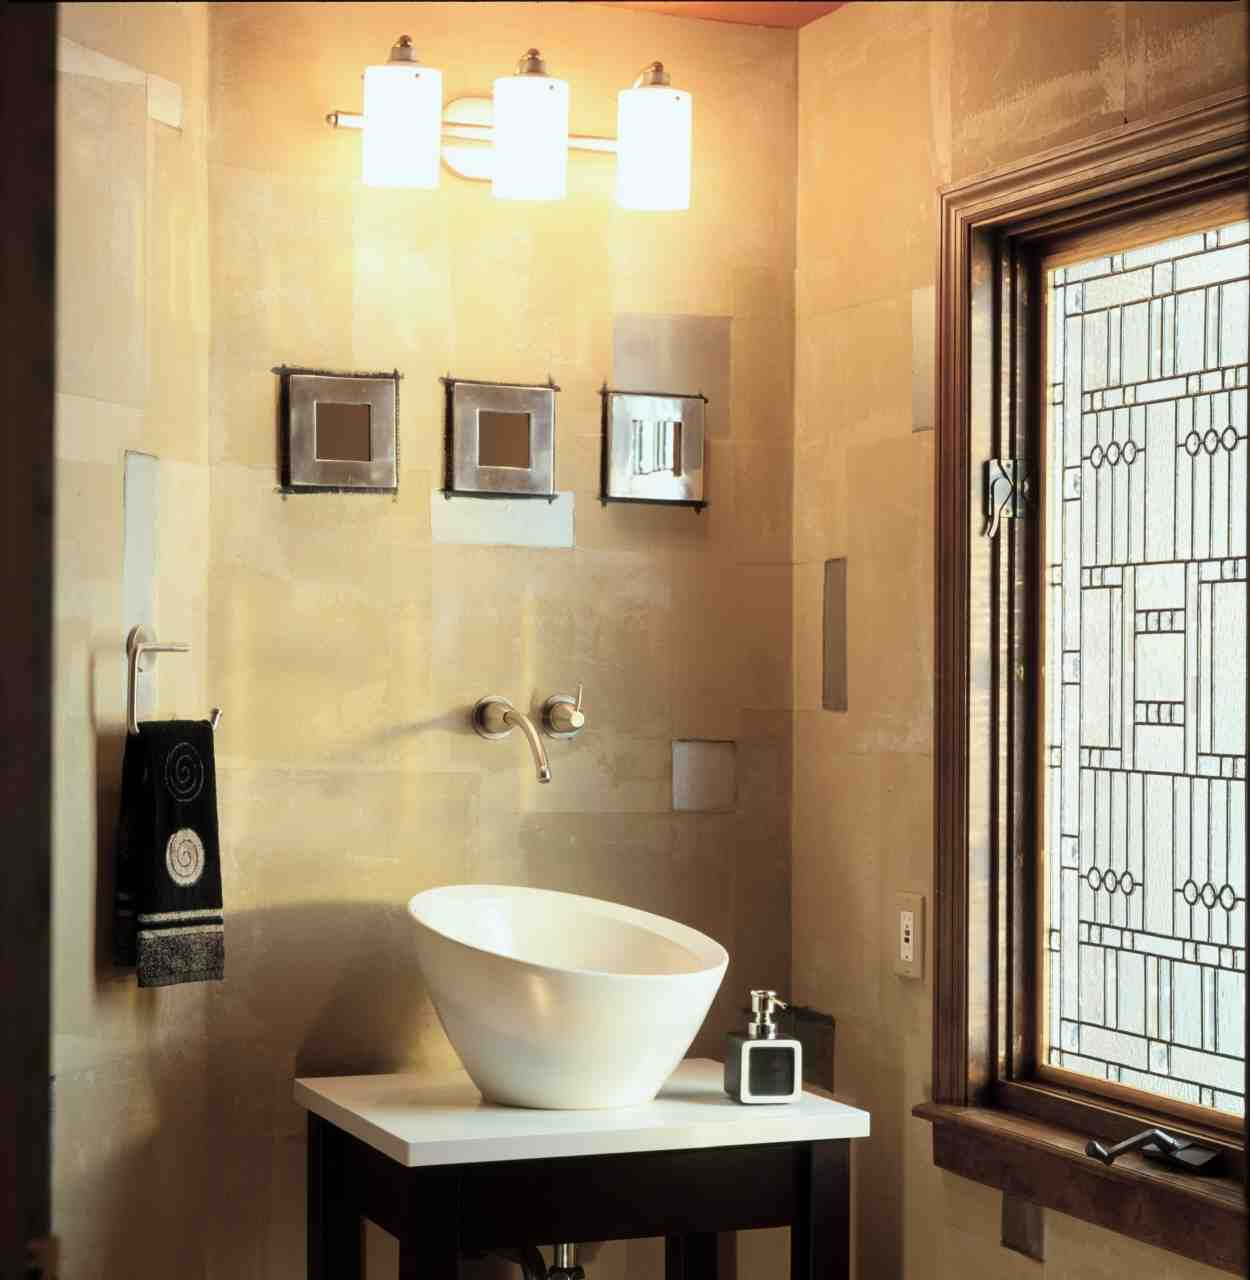 Impress Guests With 25 Stylish Modern Living Room Ideas: Guest Bathroom Decor Ideas